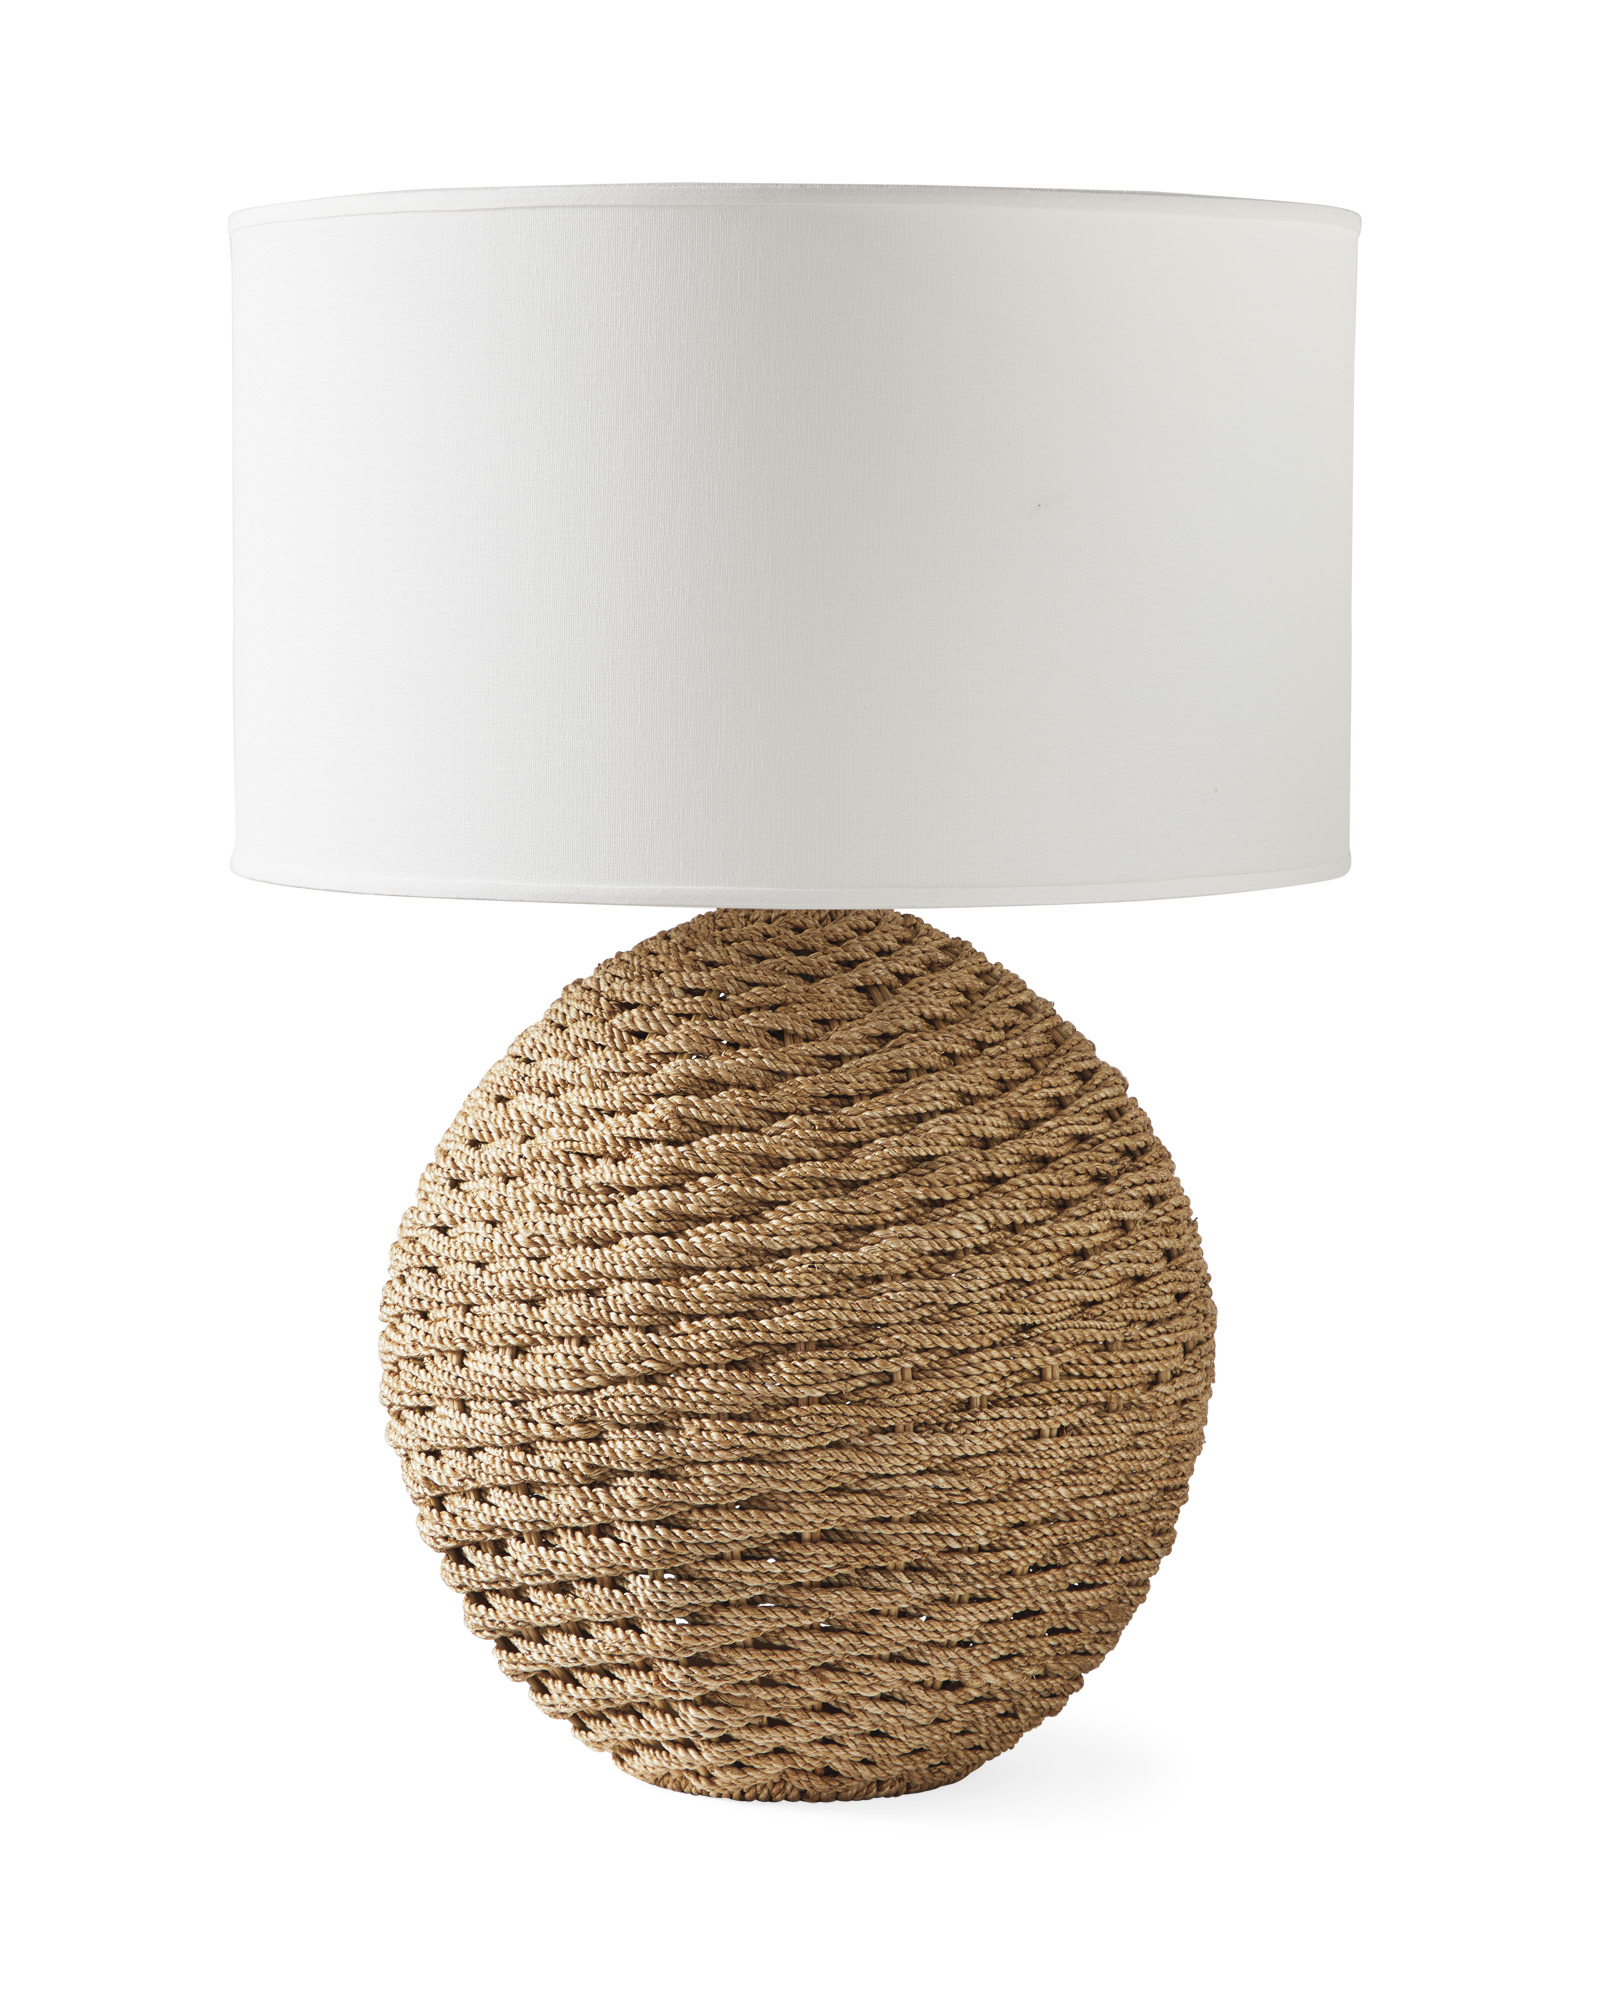 Lighting_Abott_Round_Table_Lamp_MV_0085_Crop_SH.jpg